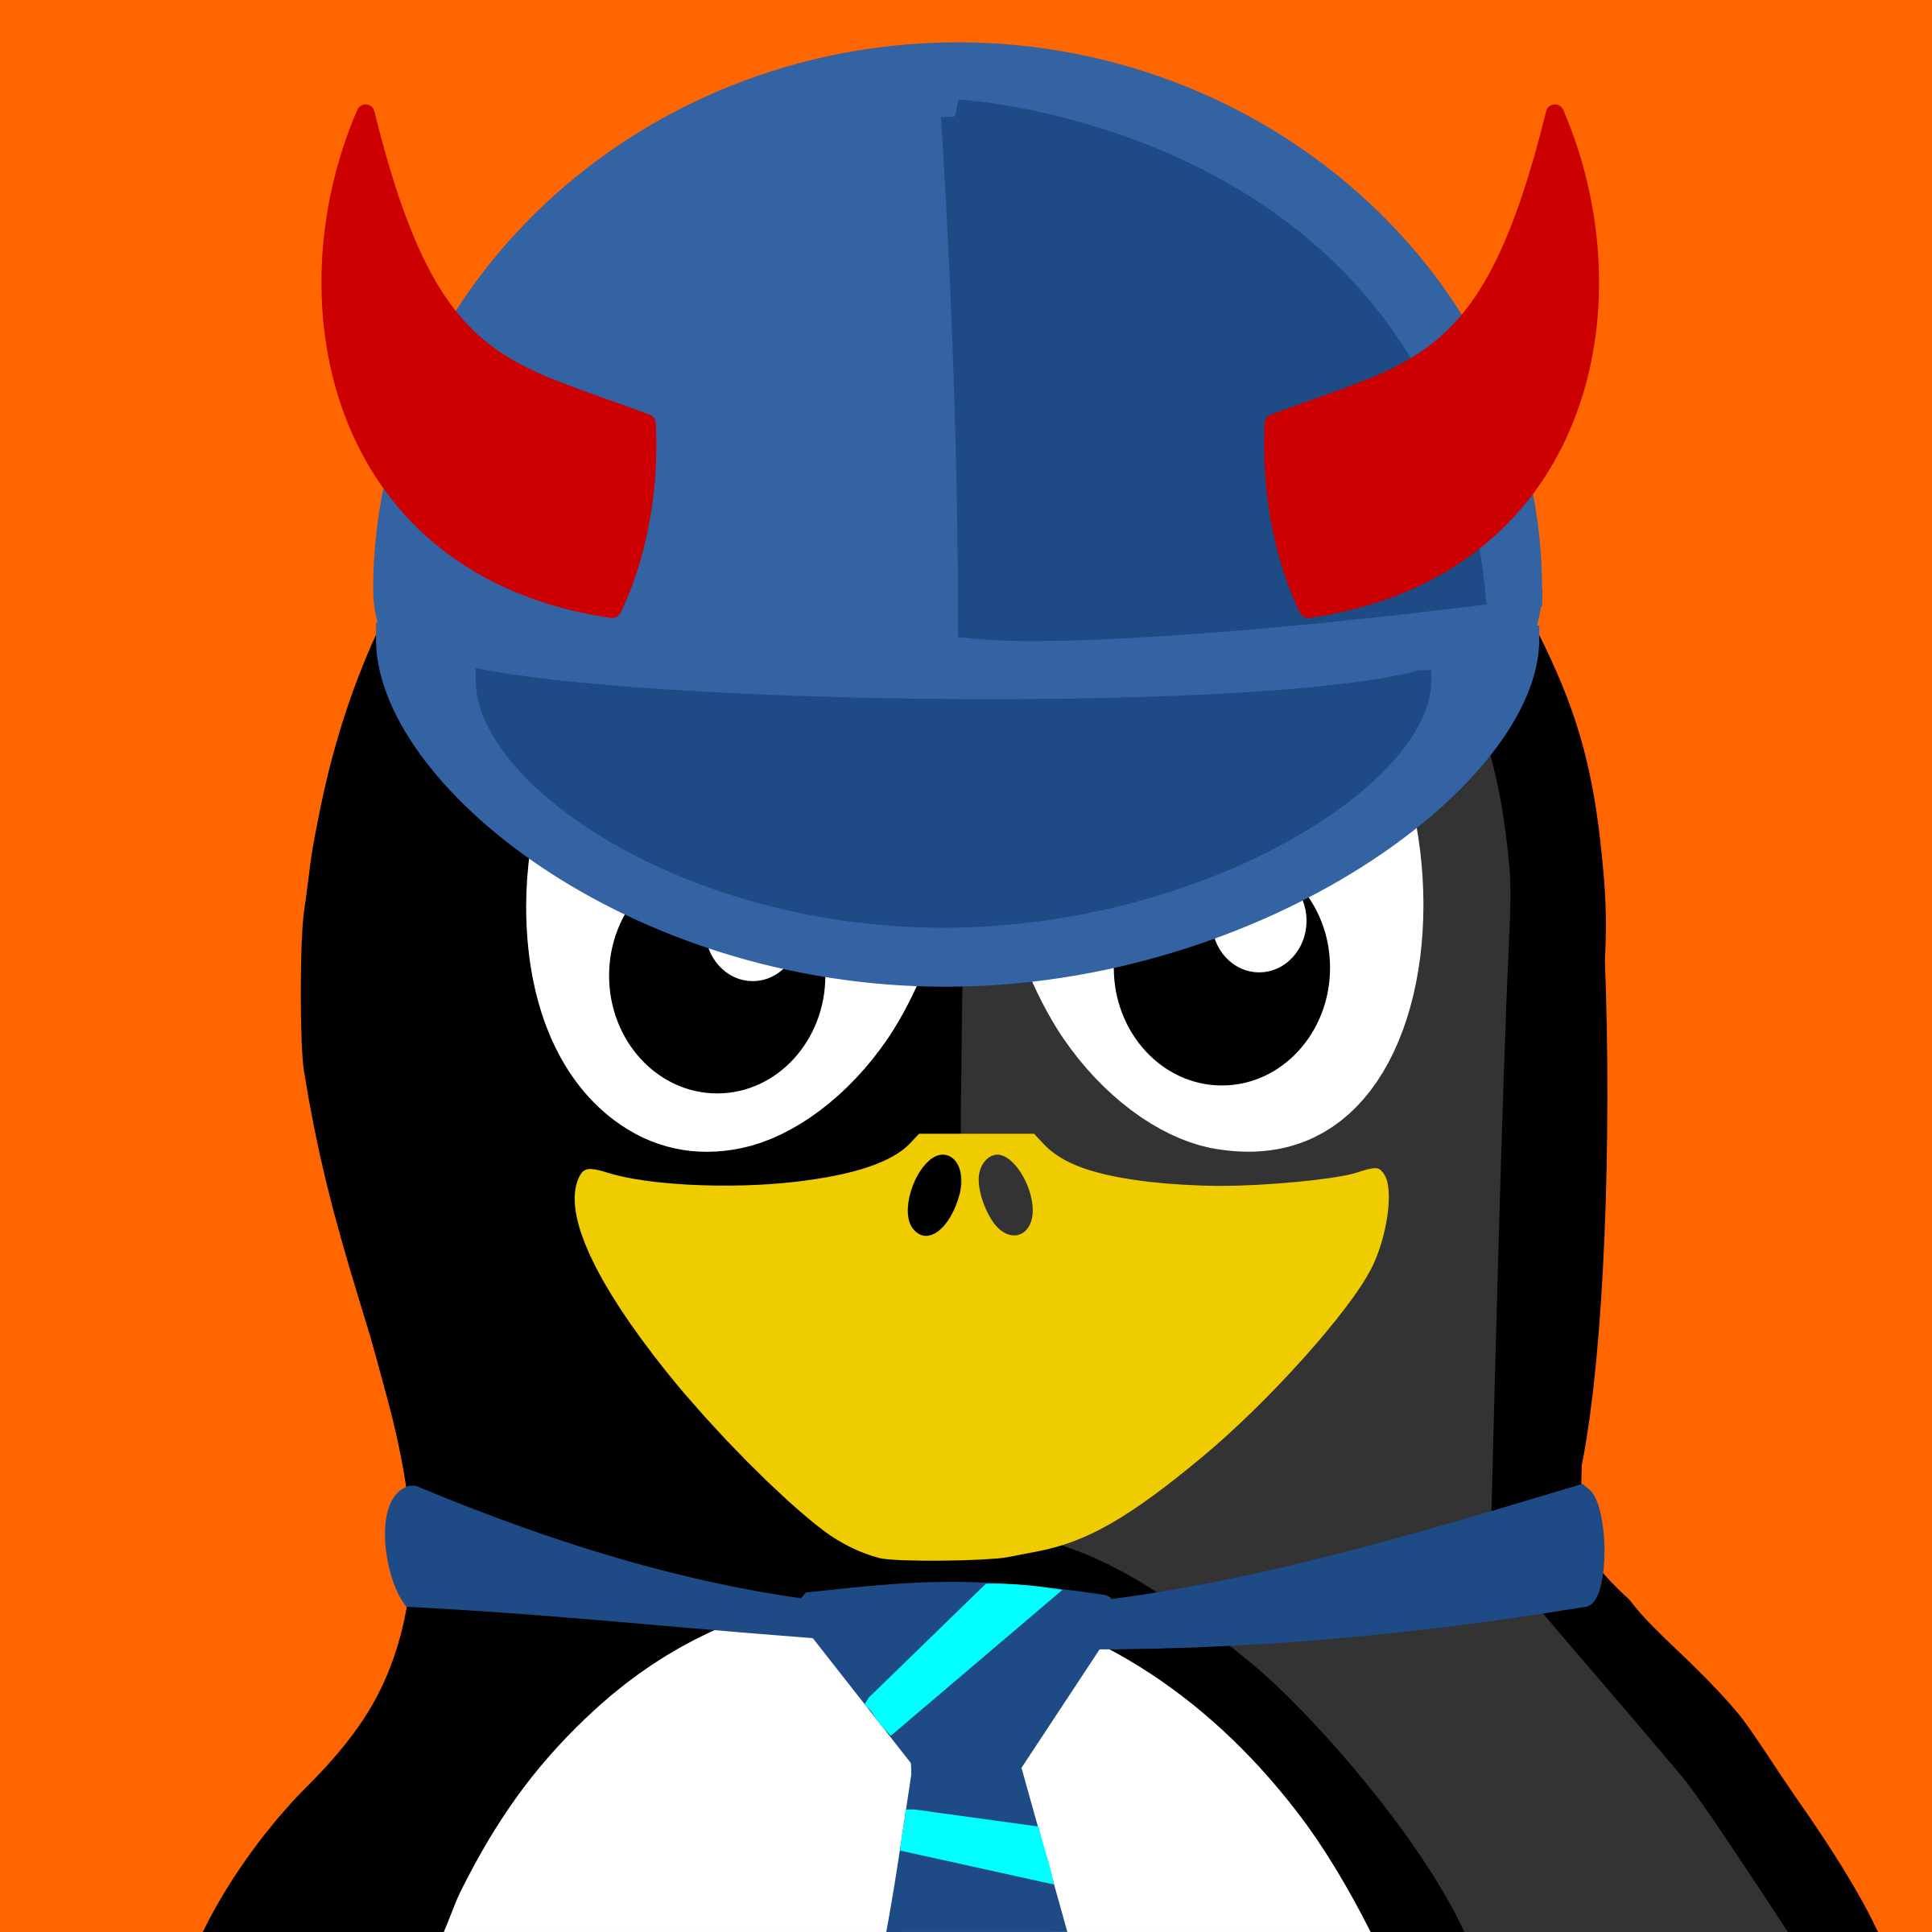 acdc penguin by BartM